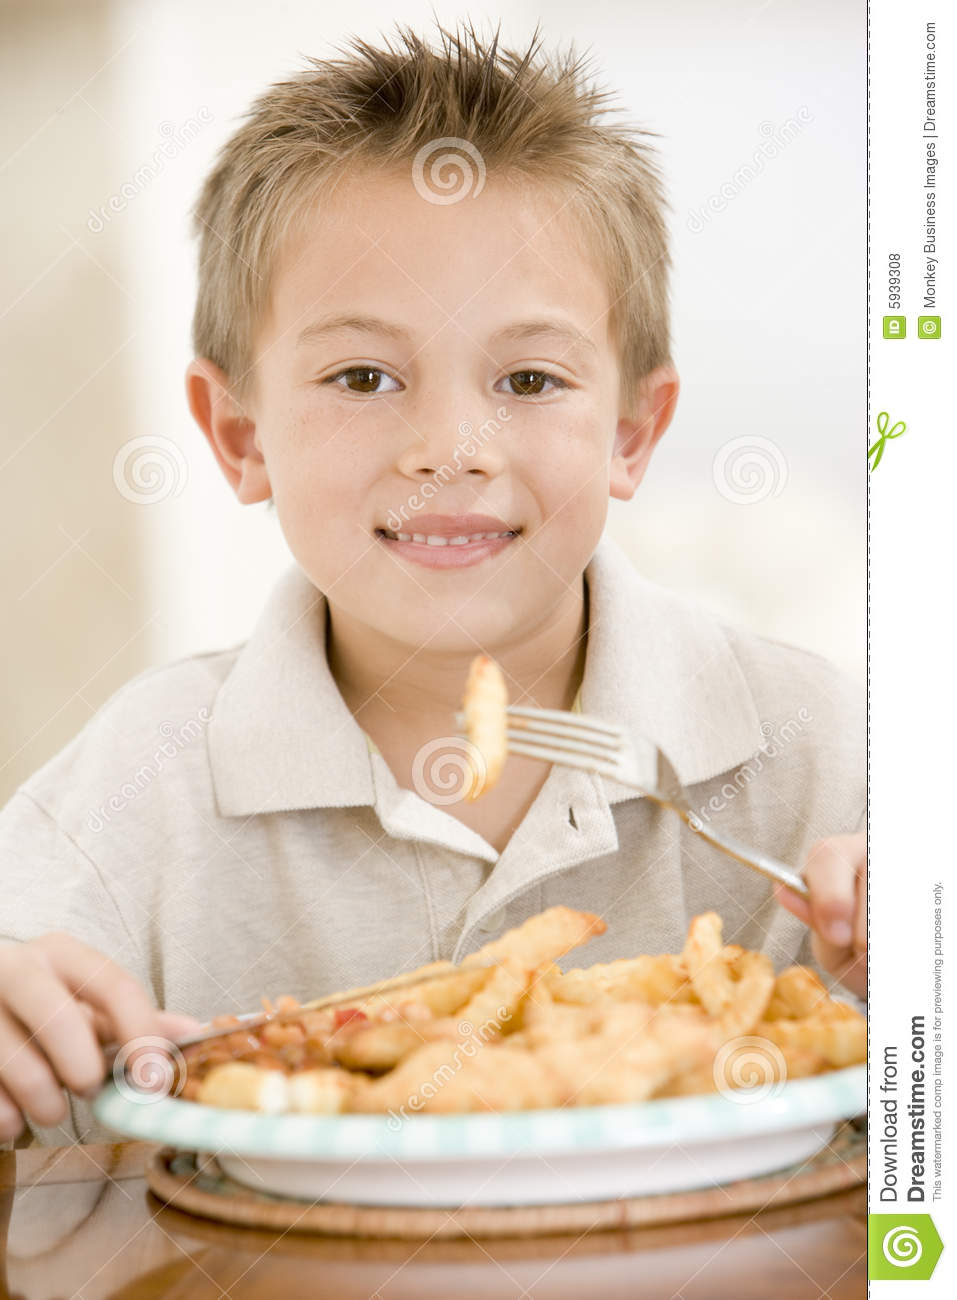 Young boy indoors eating fish and chips stock photo for Dreaming of eating fish